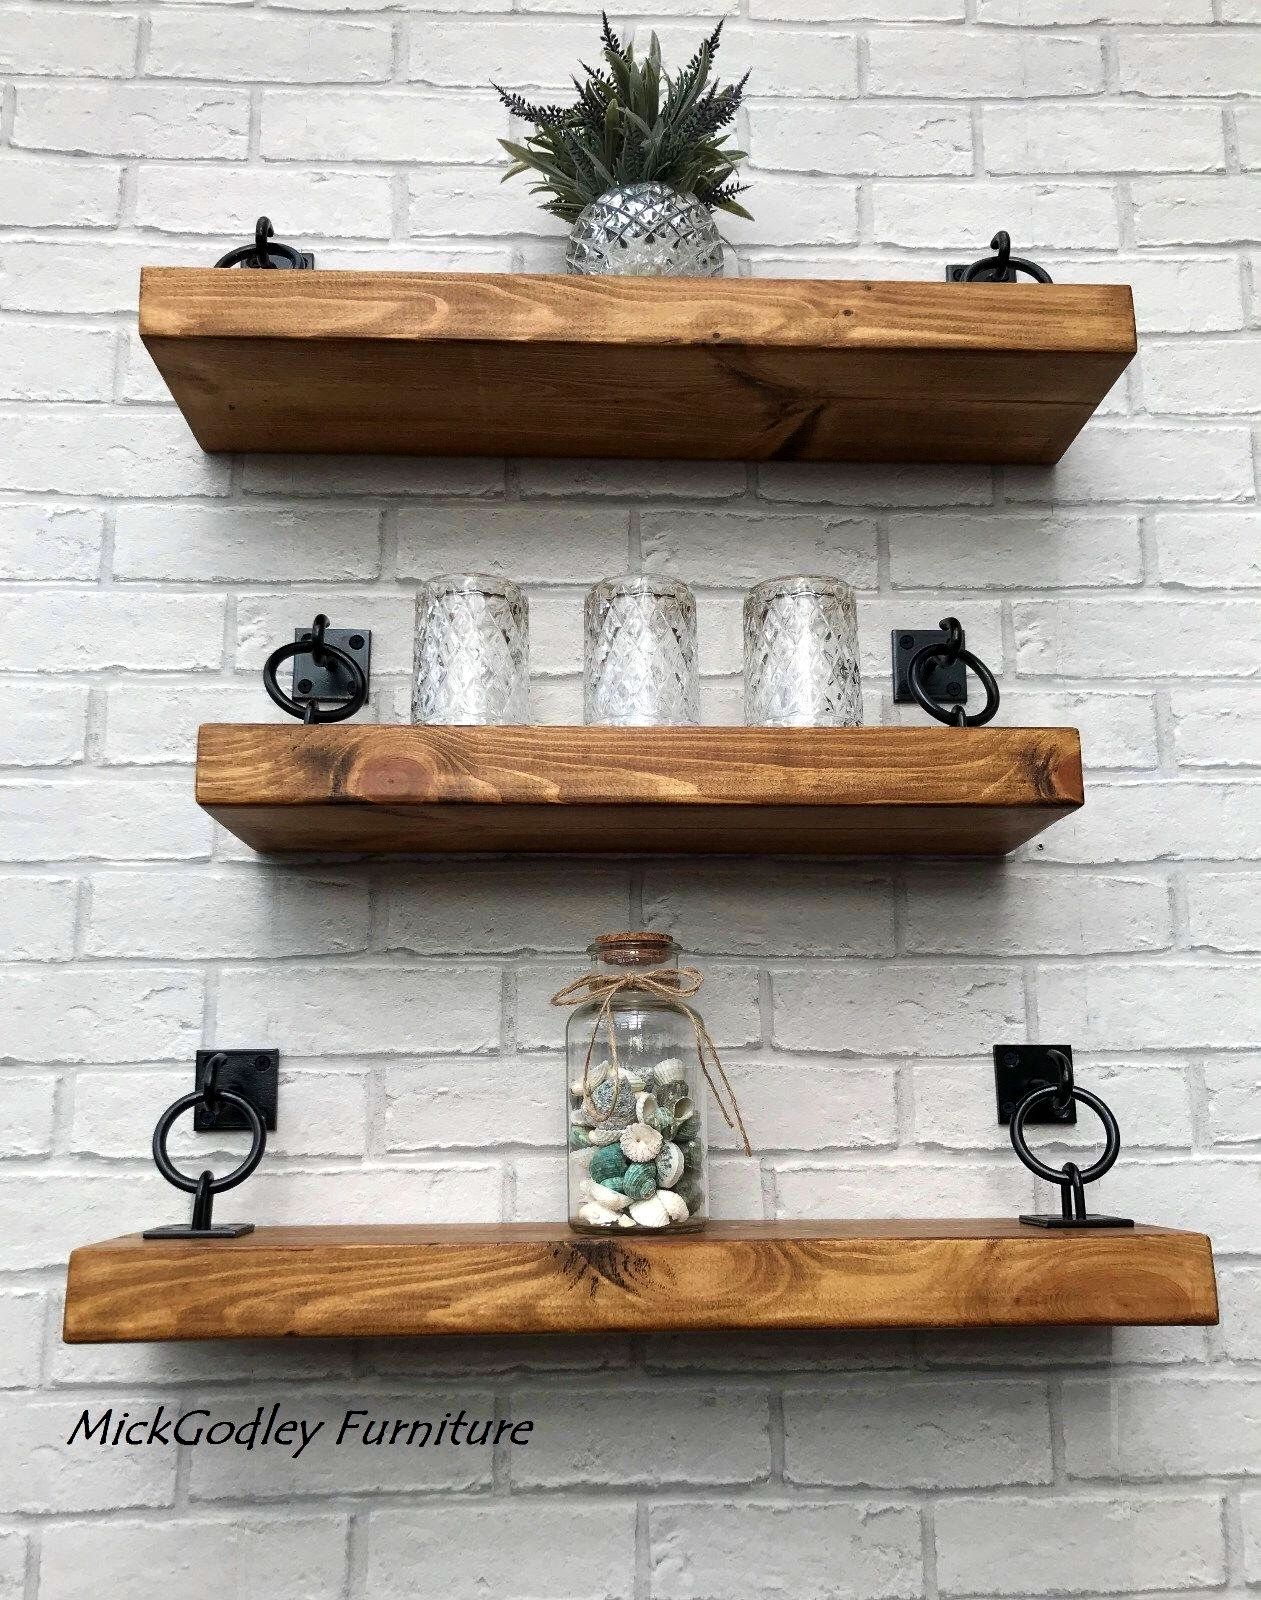 rustic industrial handmade floating shelves shelf solid wood excited share the latest addition etsy wall mounted storage solutions extra wide standing coat and hat rack open